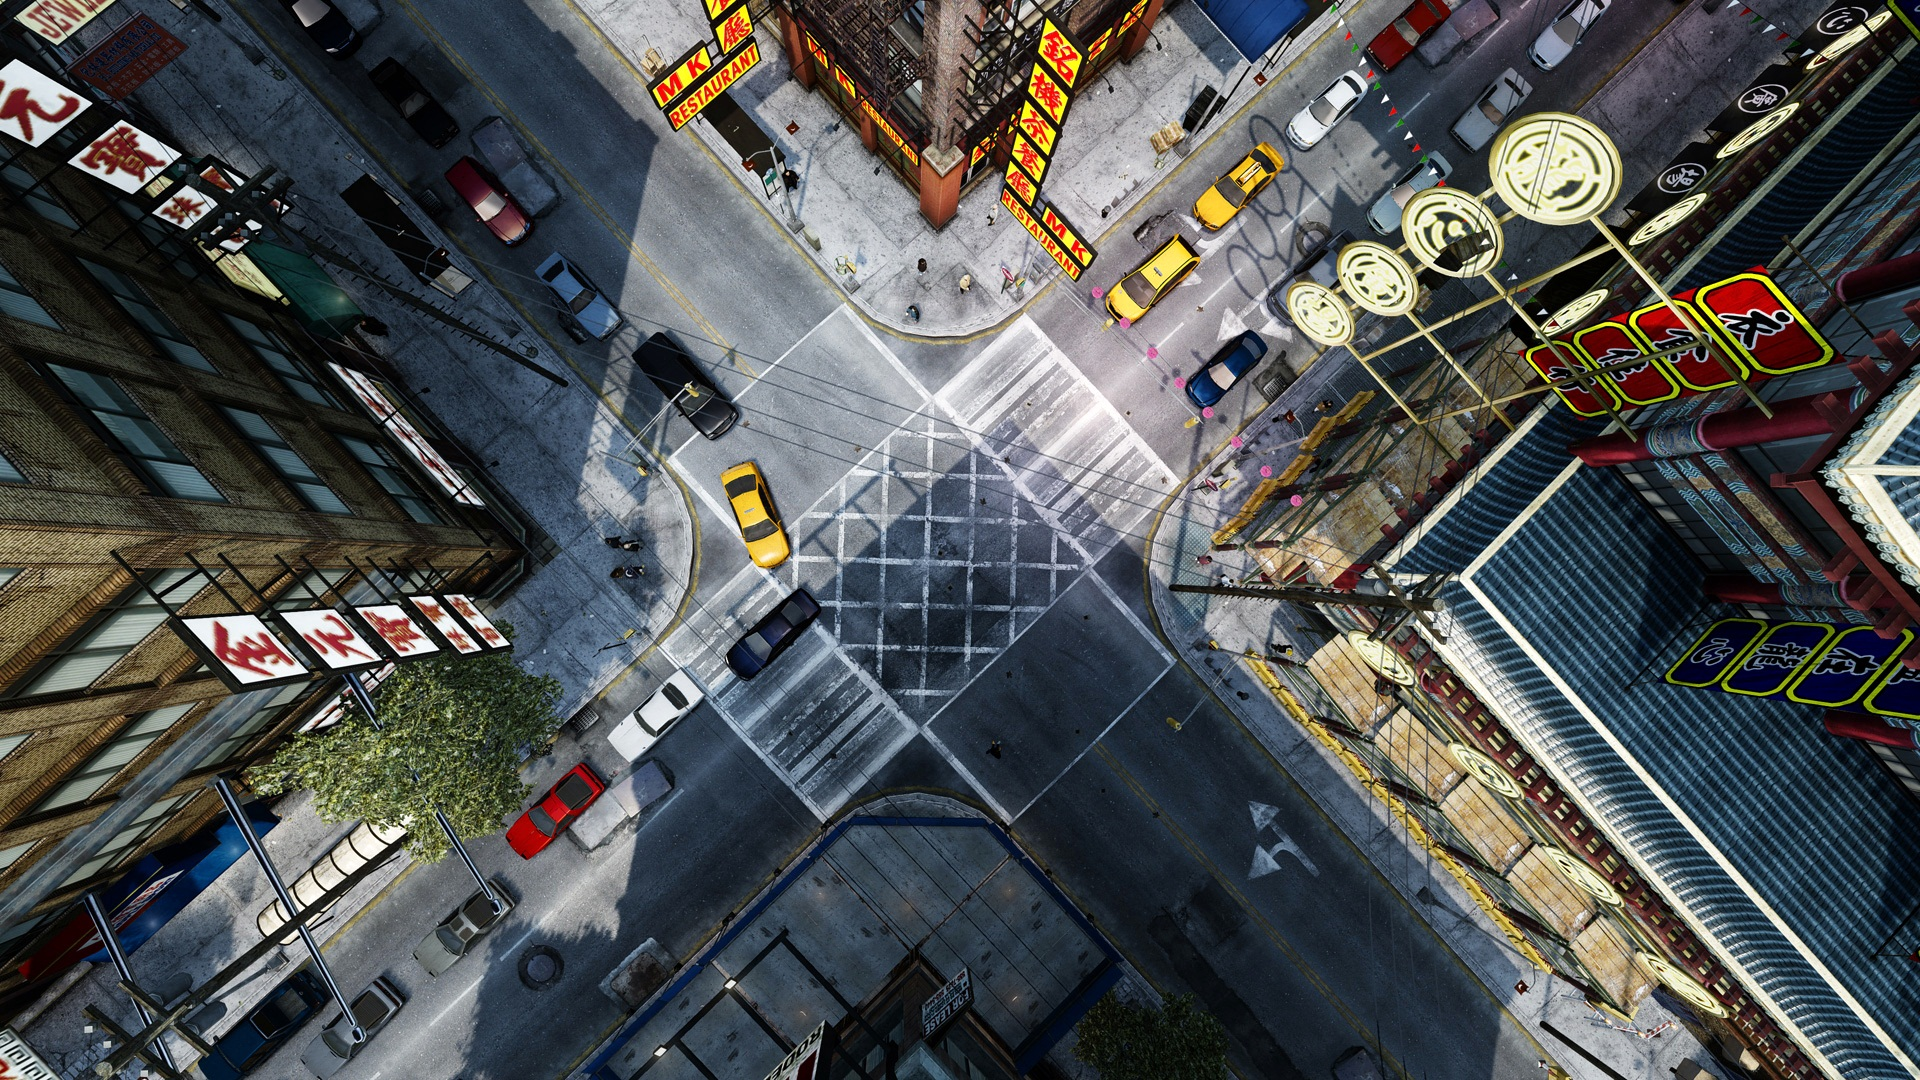 GTA IV City Wallpapers HD Wallpapers 1920x1080